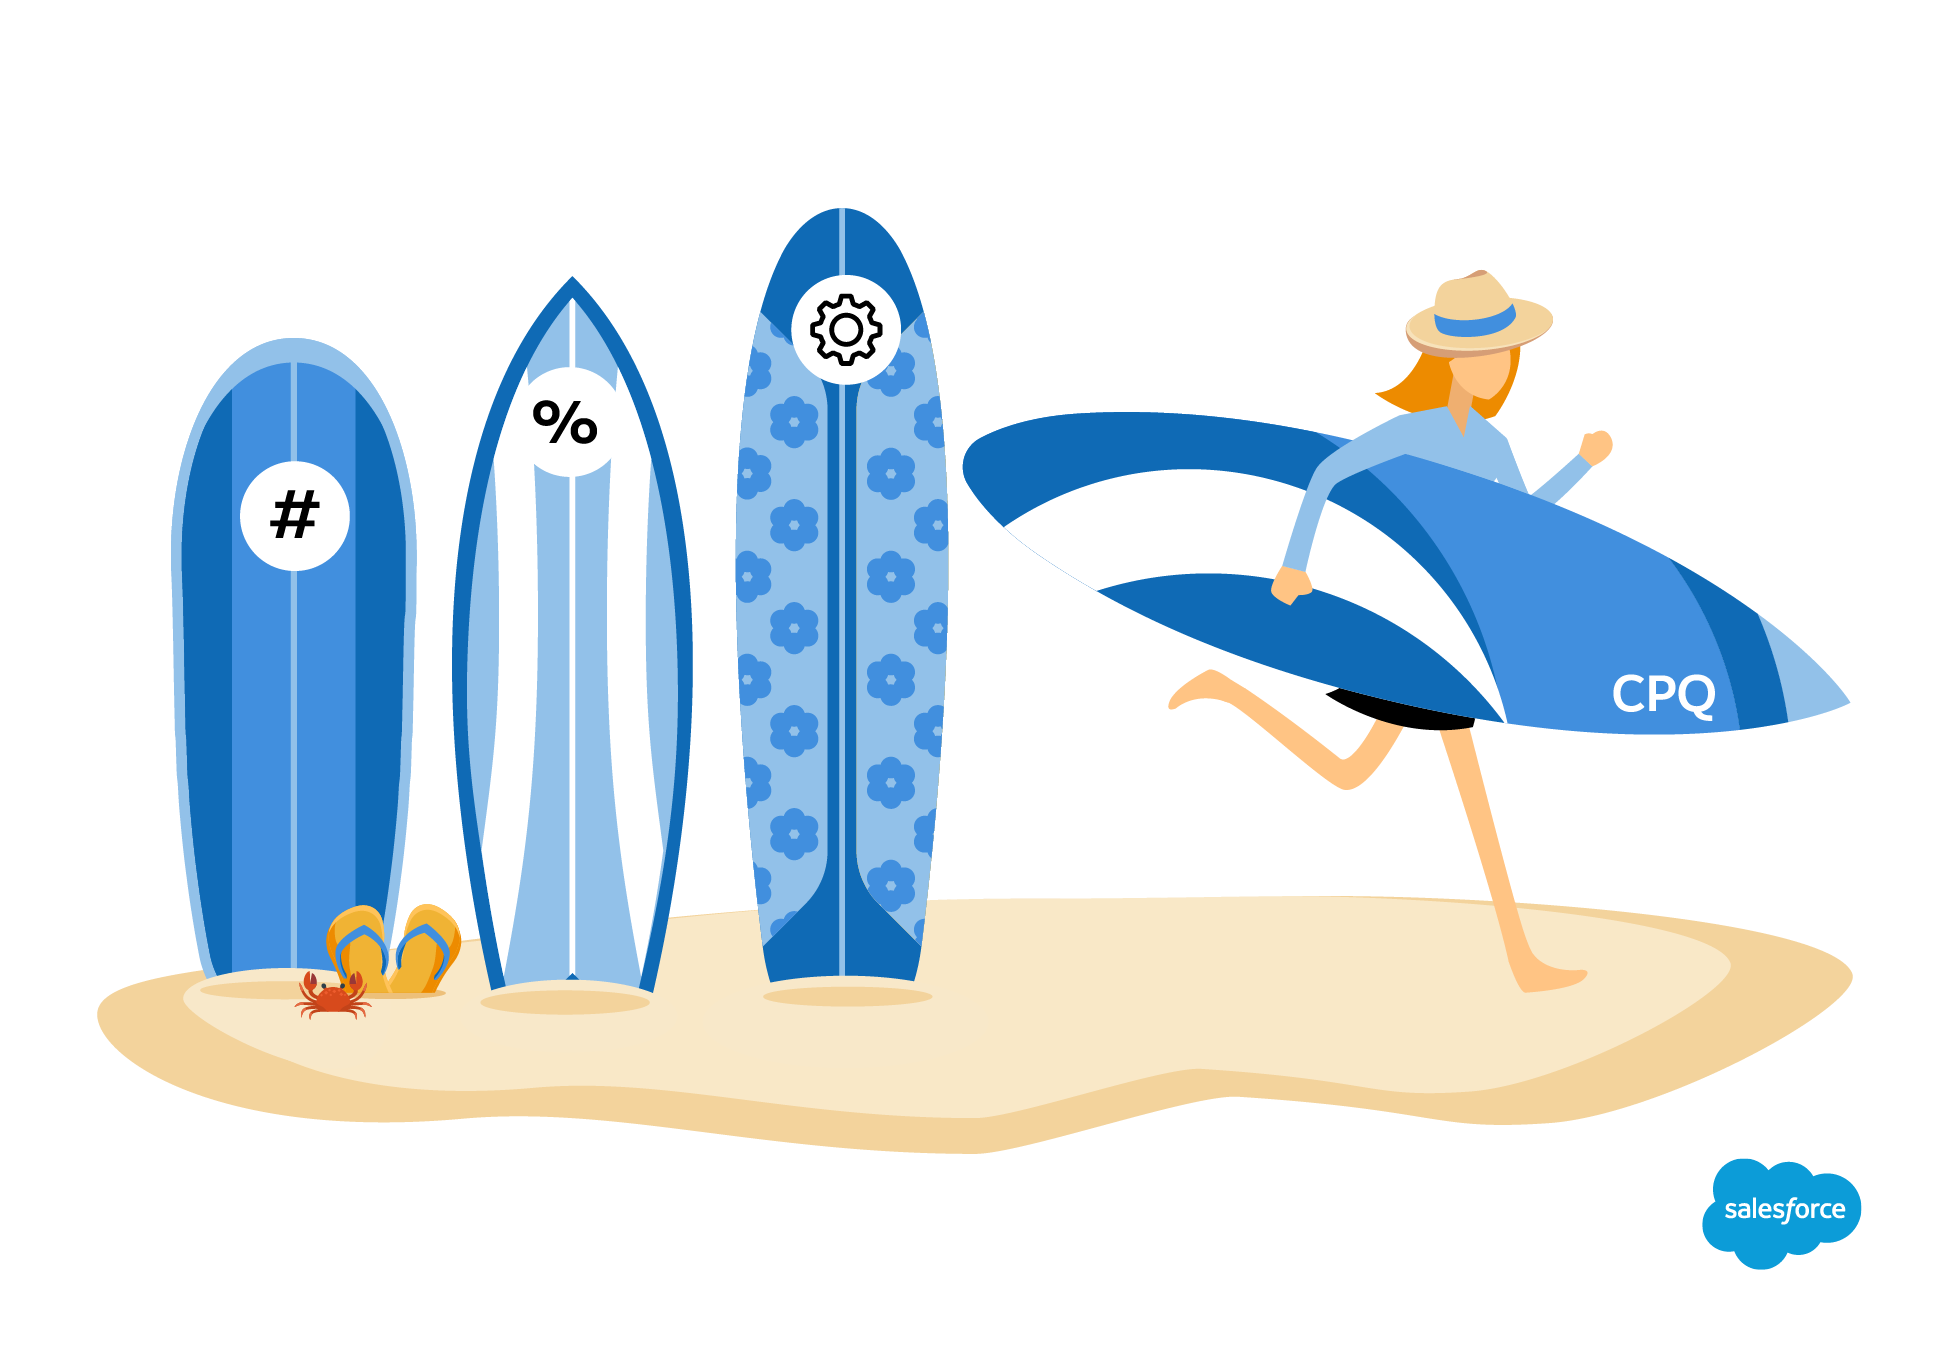 the newest wave of sales optimization tools